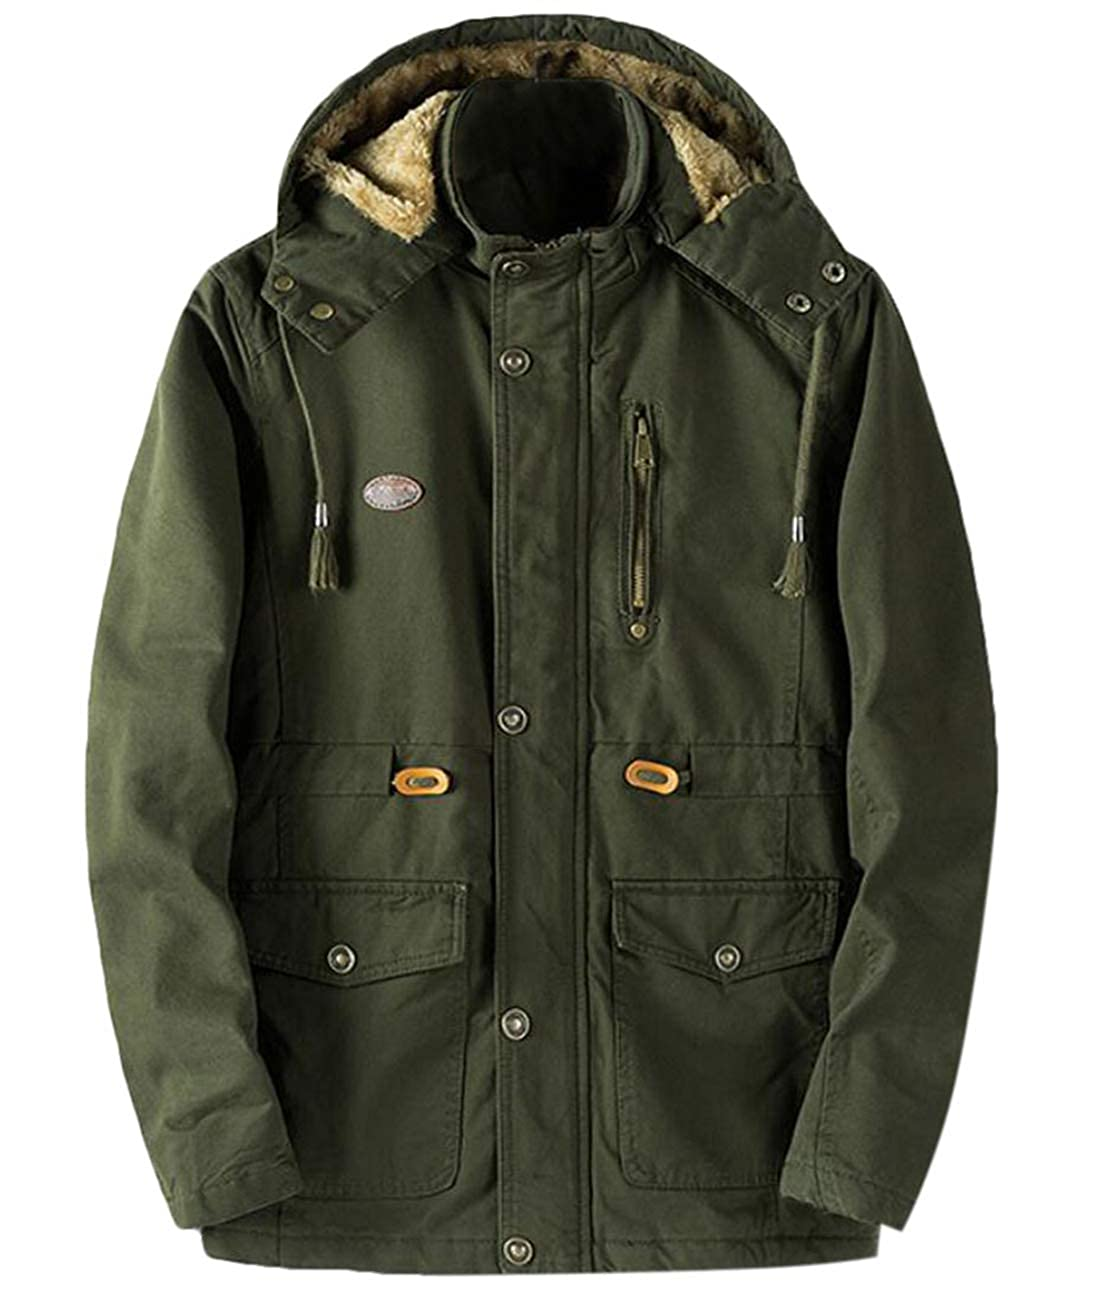 Twcx Mens Winter Fleece Lined Military Cotton Hooded Thicken Outwear Jackets Coats Green XL